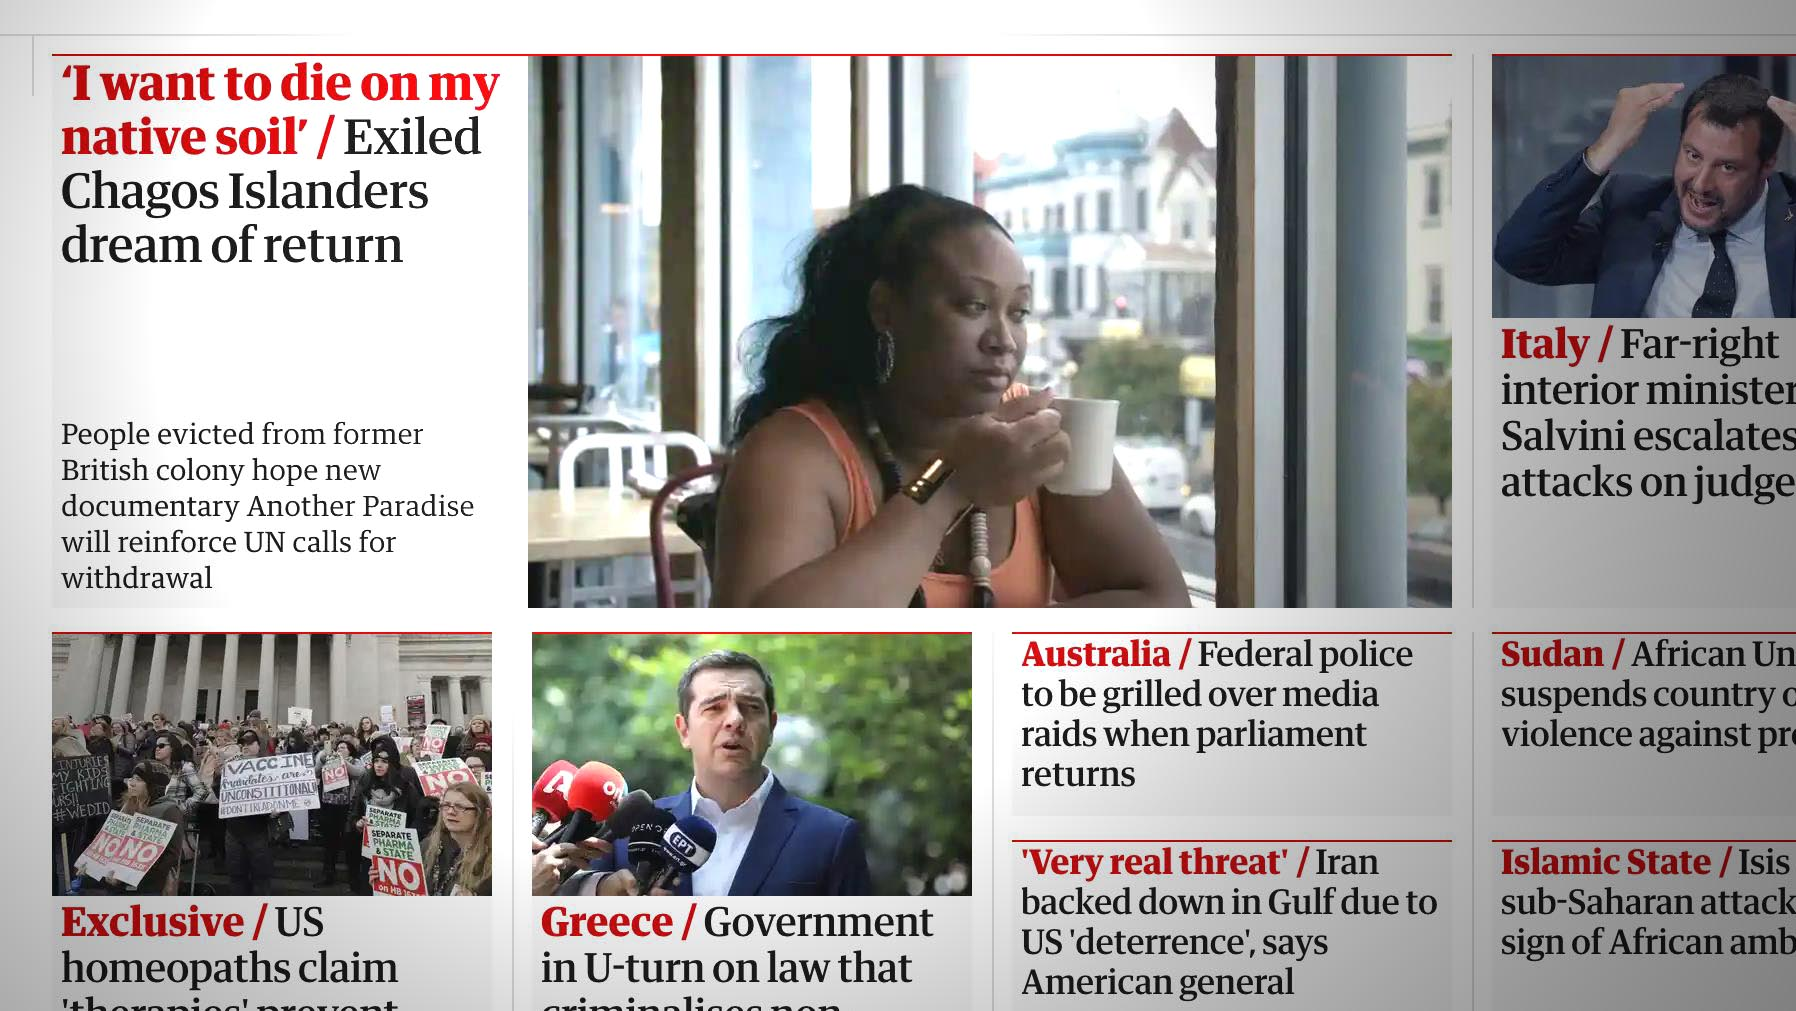 Excerpt from the Guardian